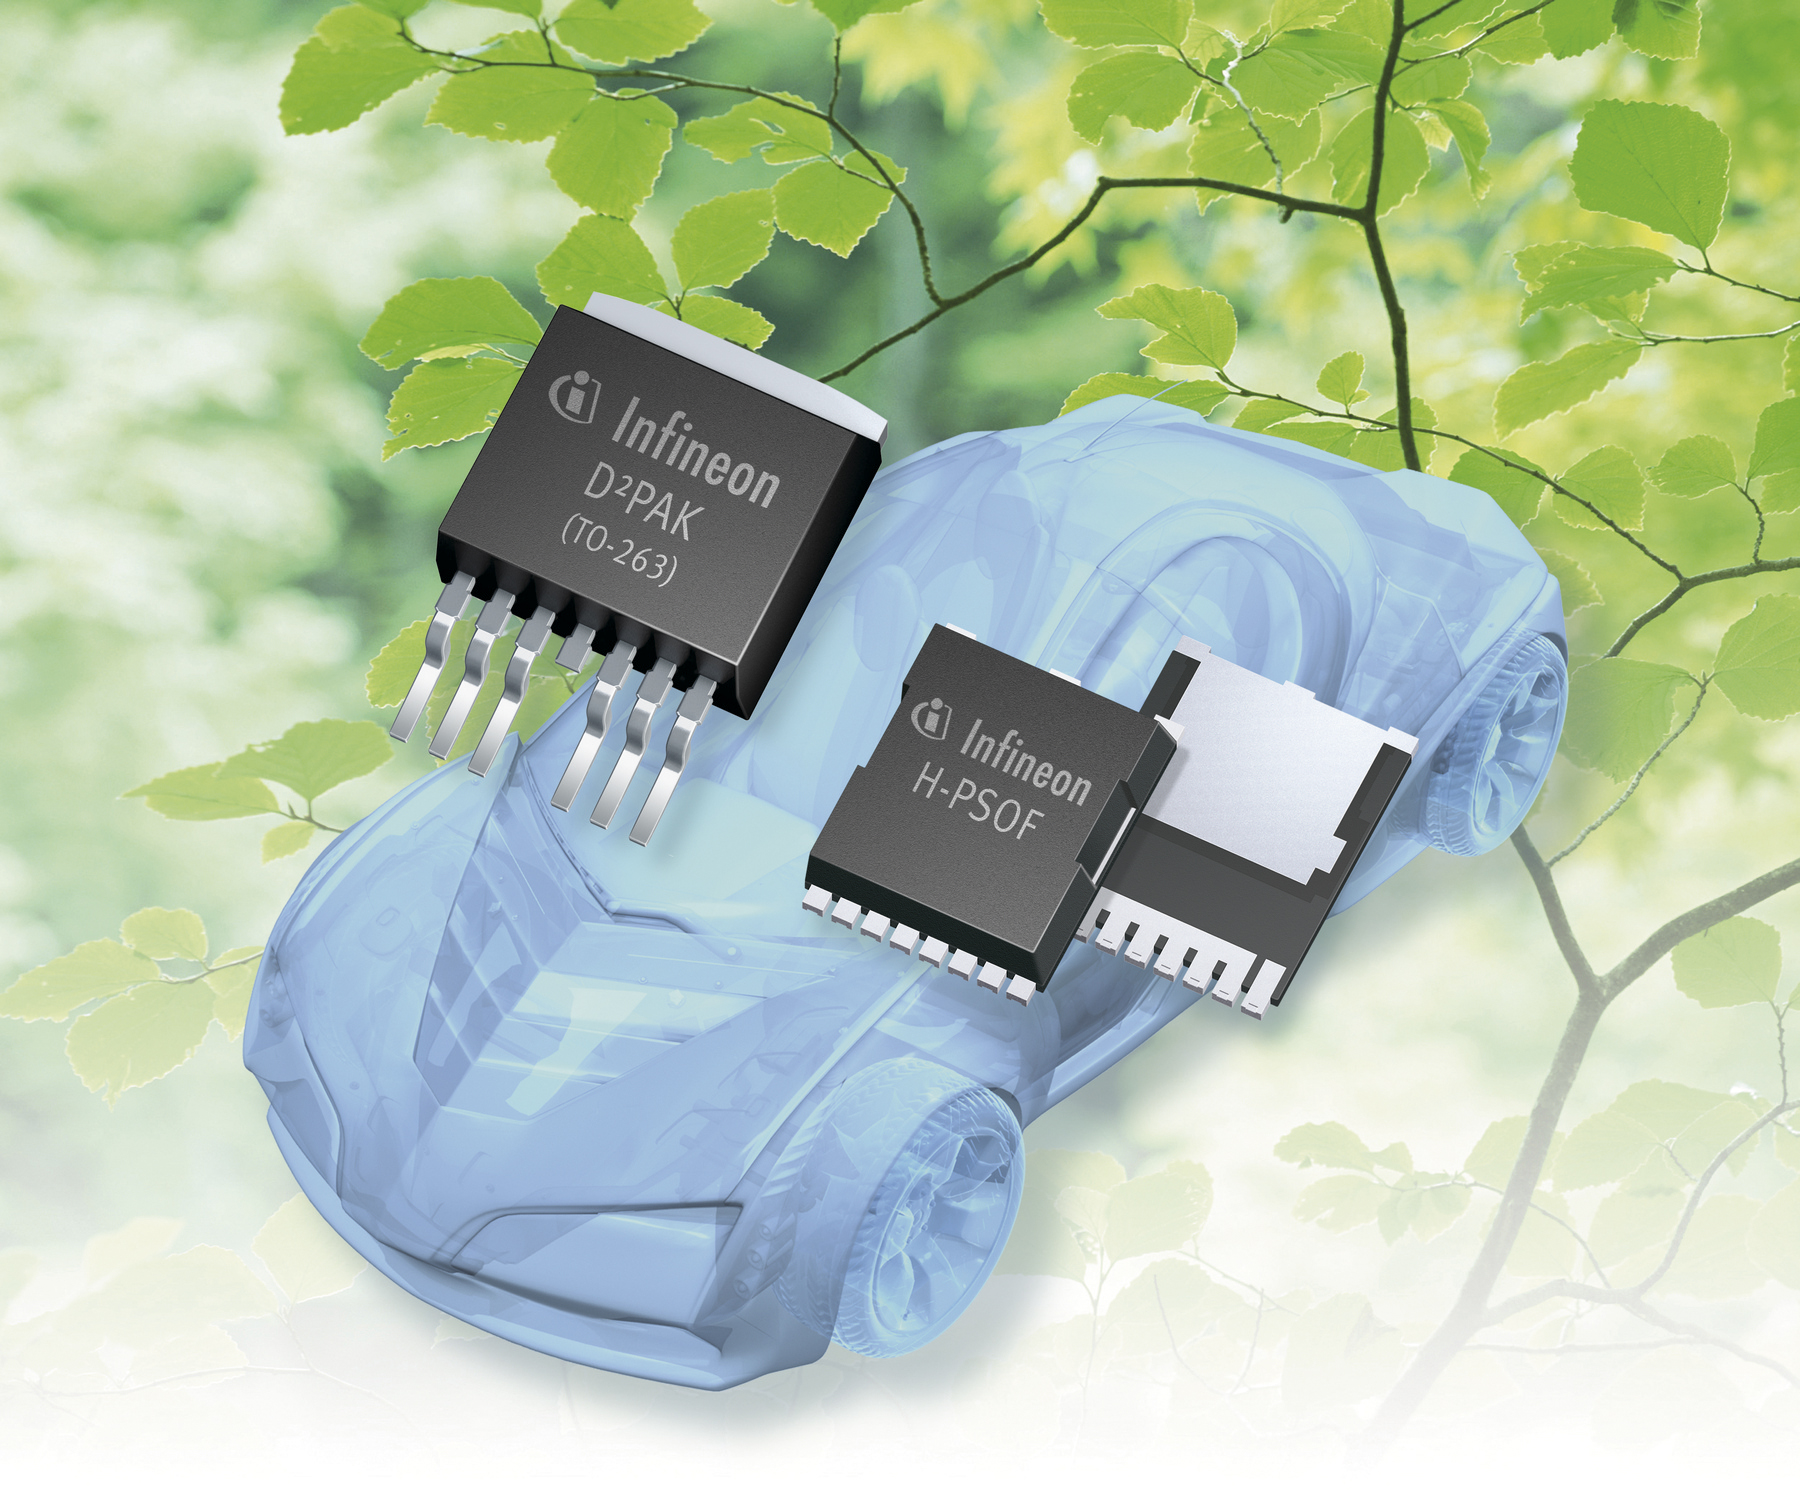 Fairchild Semiconductor and Infineon Technologies Reach License